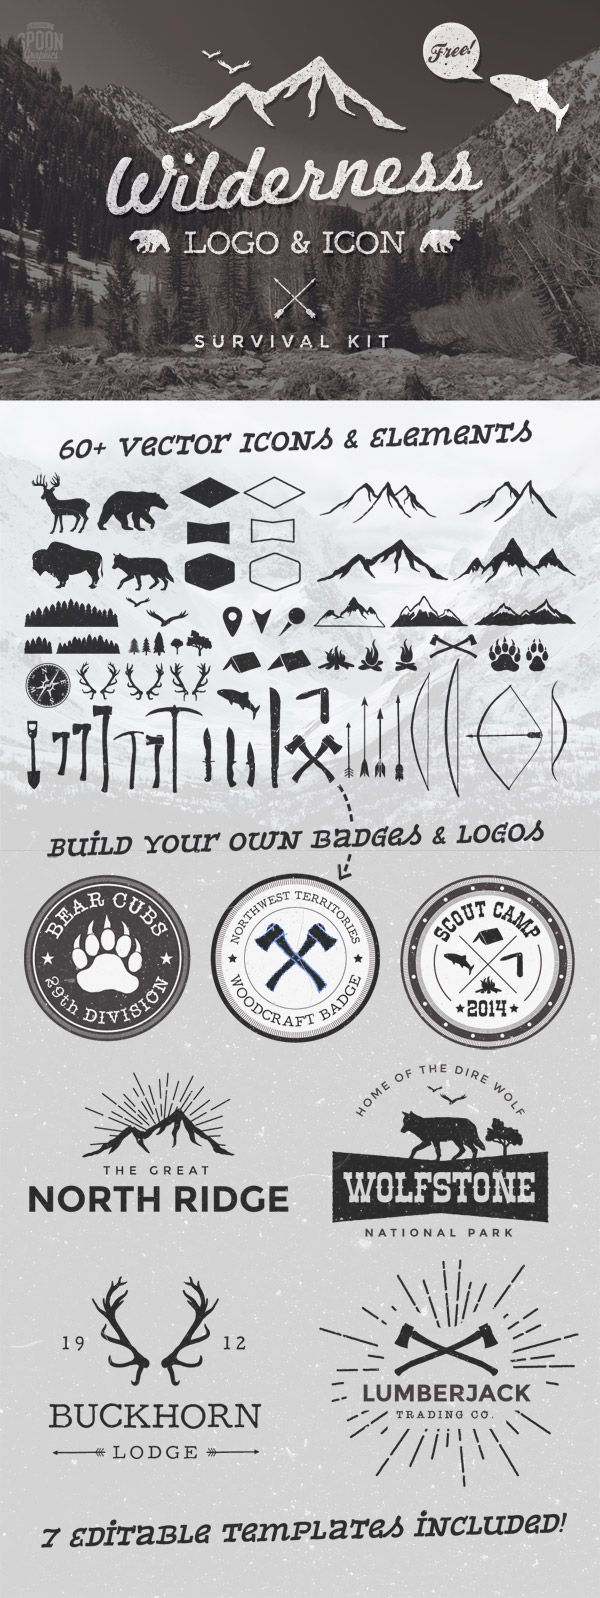 best ideas about logo templates logo stamp awesomesauce vector kit on spoon graphics wilderness logo and icon survivial kit